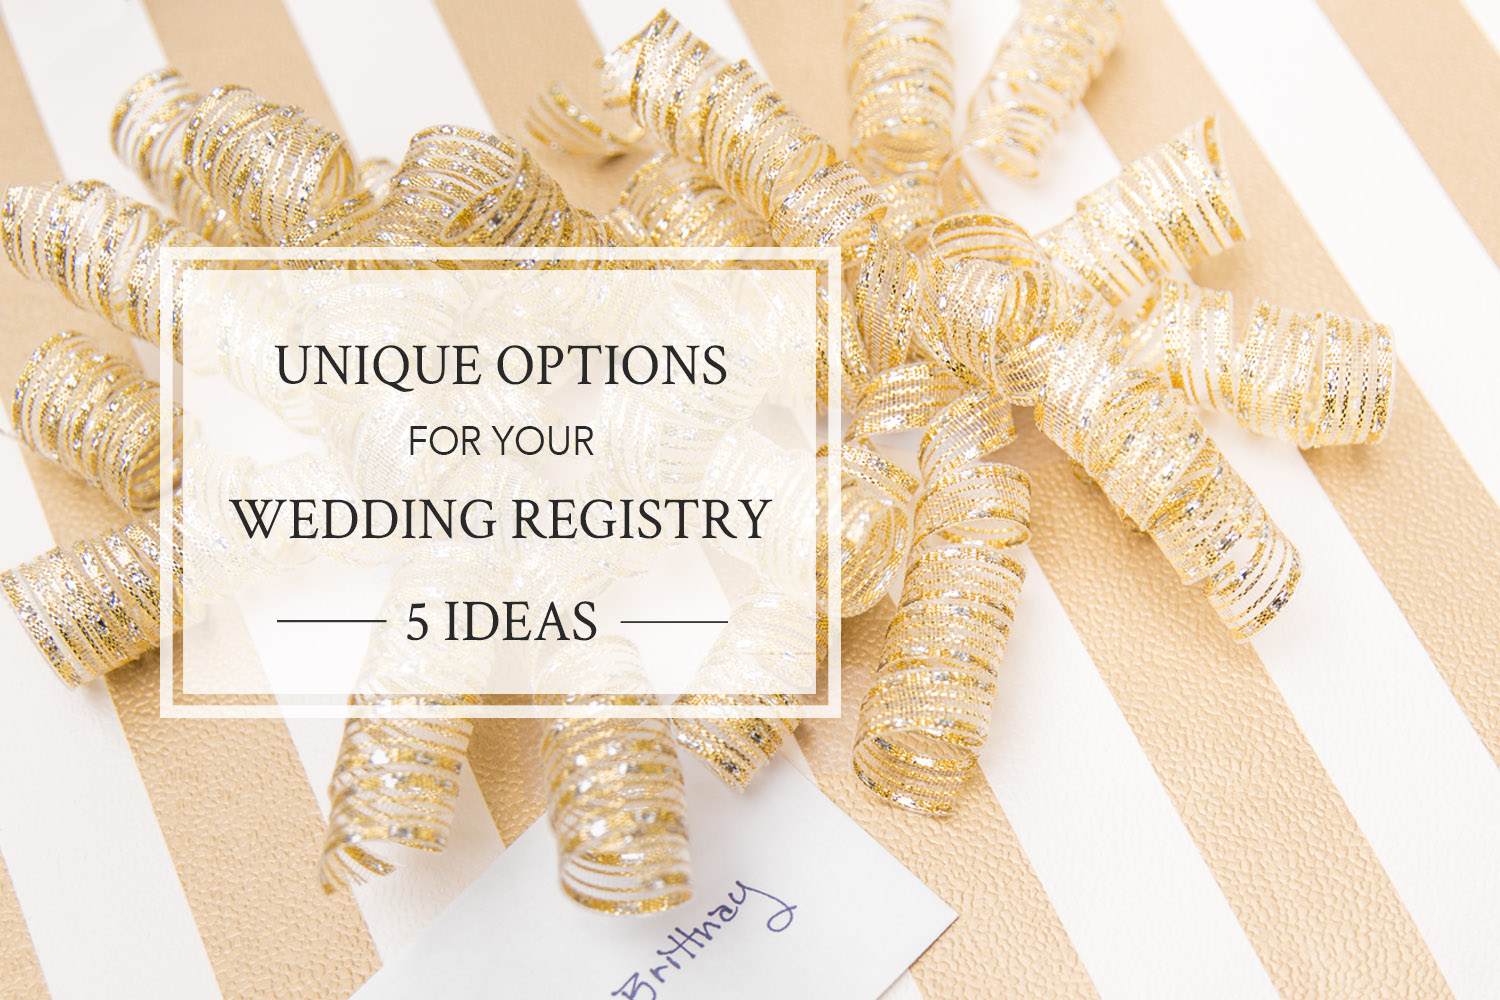 wedding registry ideas affordable navokalcom With alternative wedding registry ideas